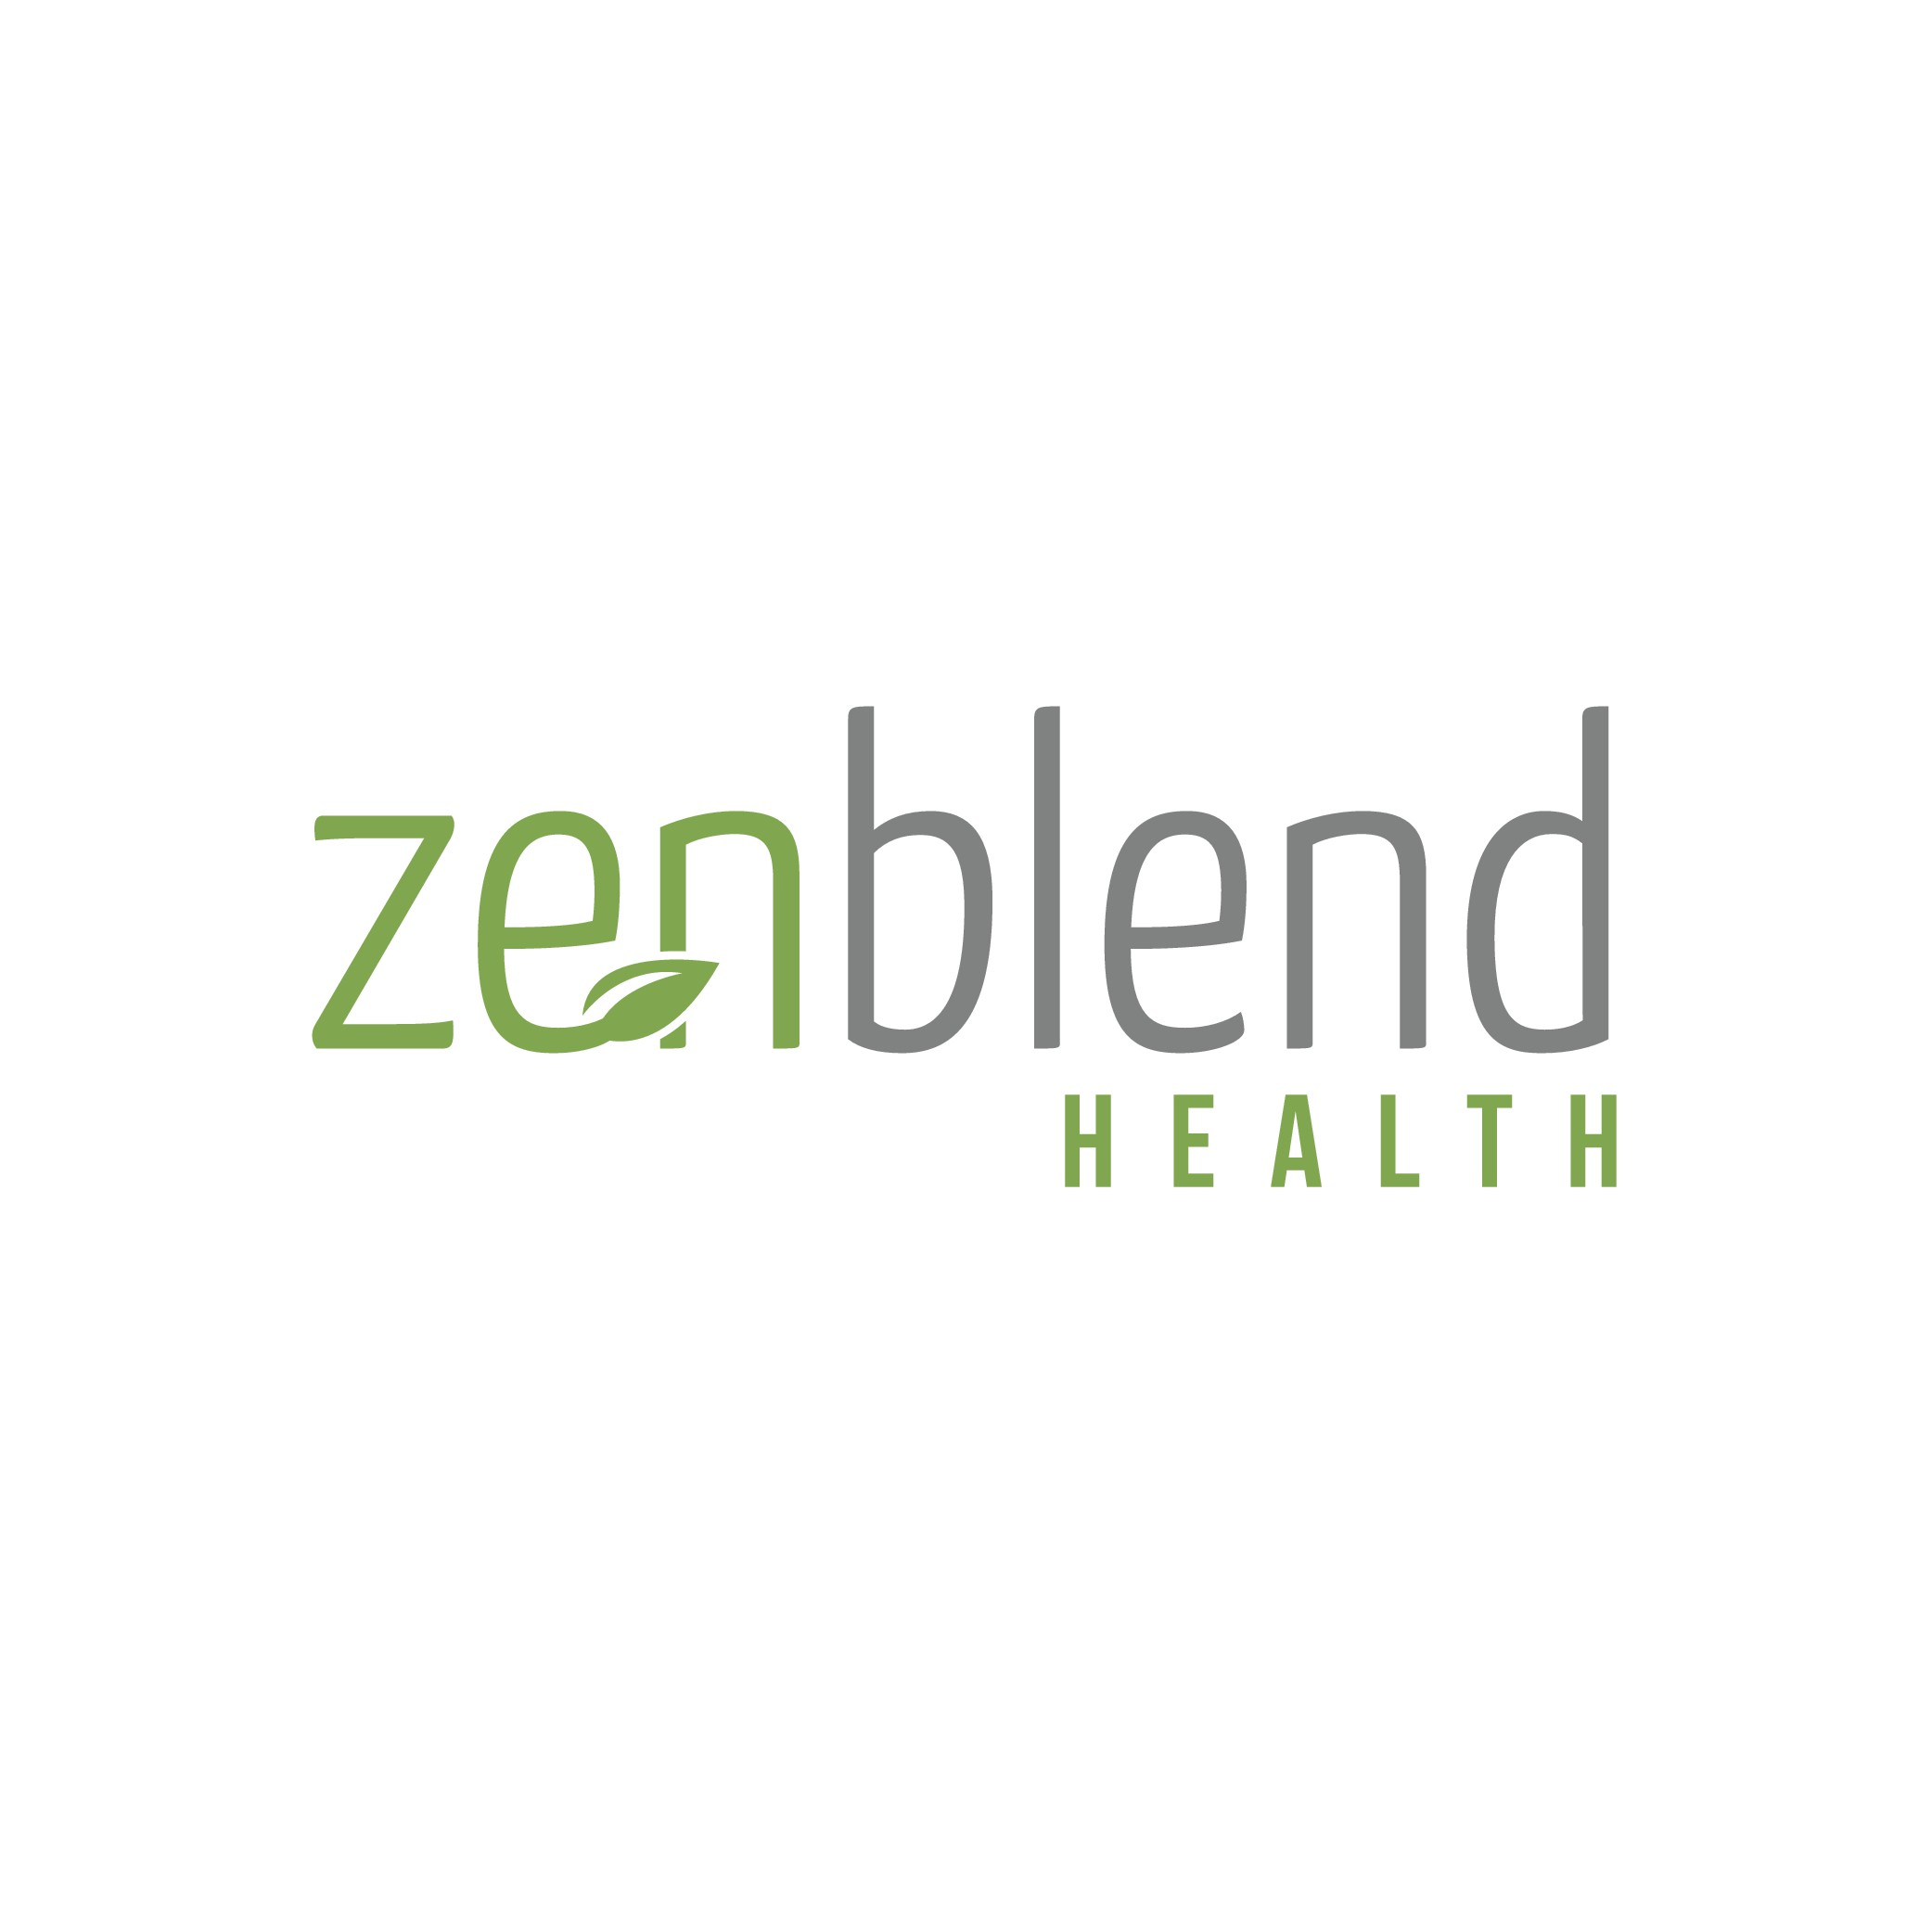 zenblend health logo: be a part of our exciting wellbeing movement !!!